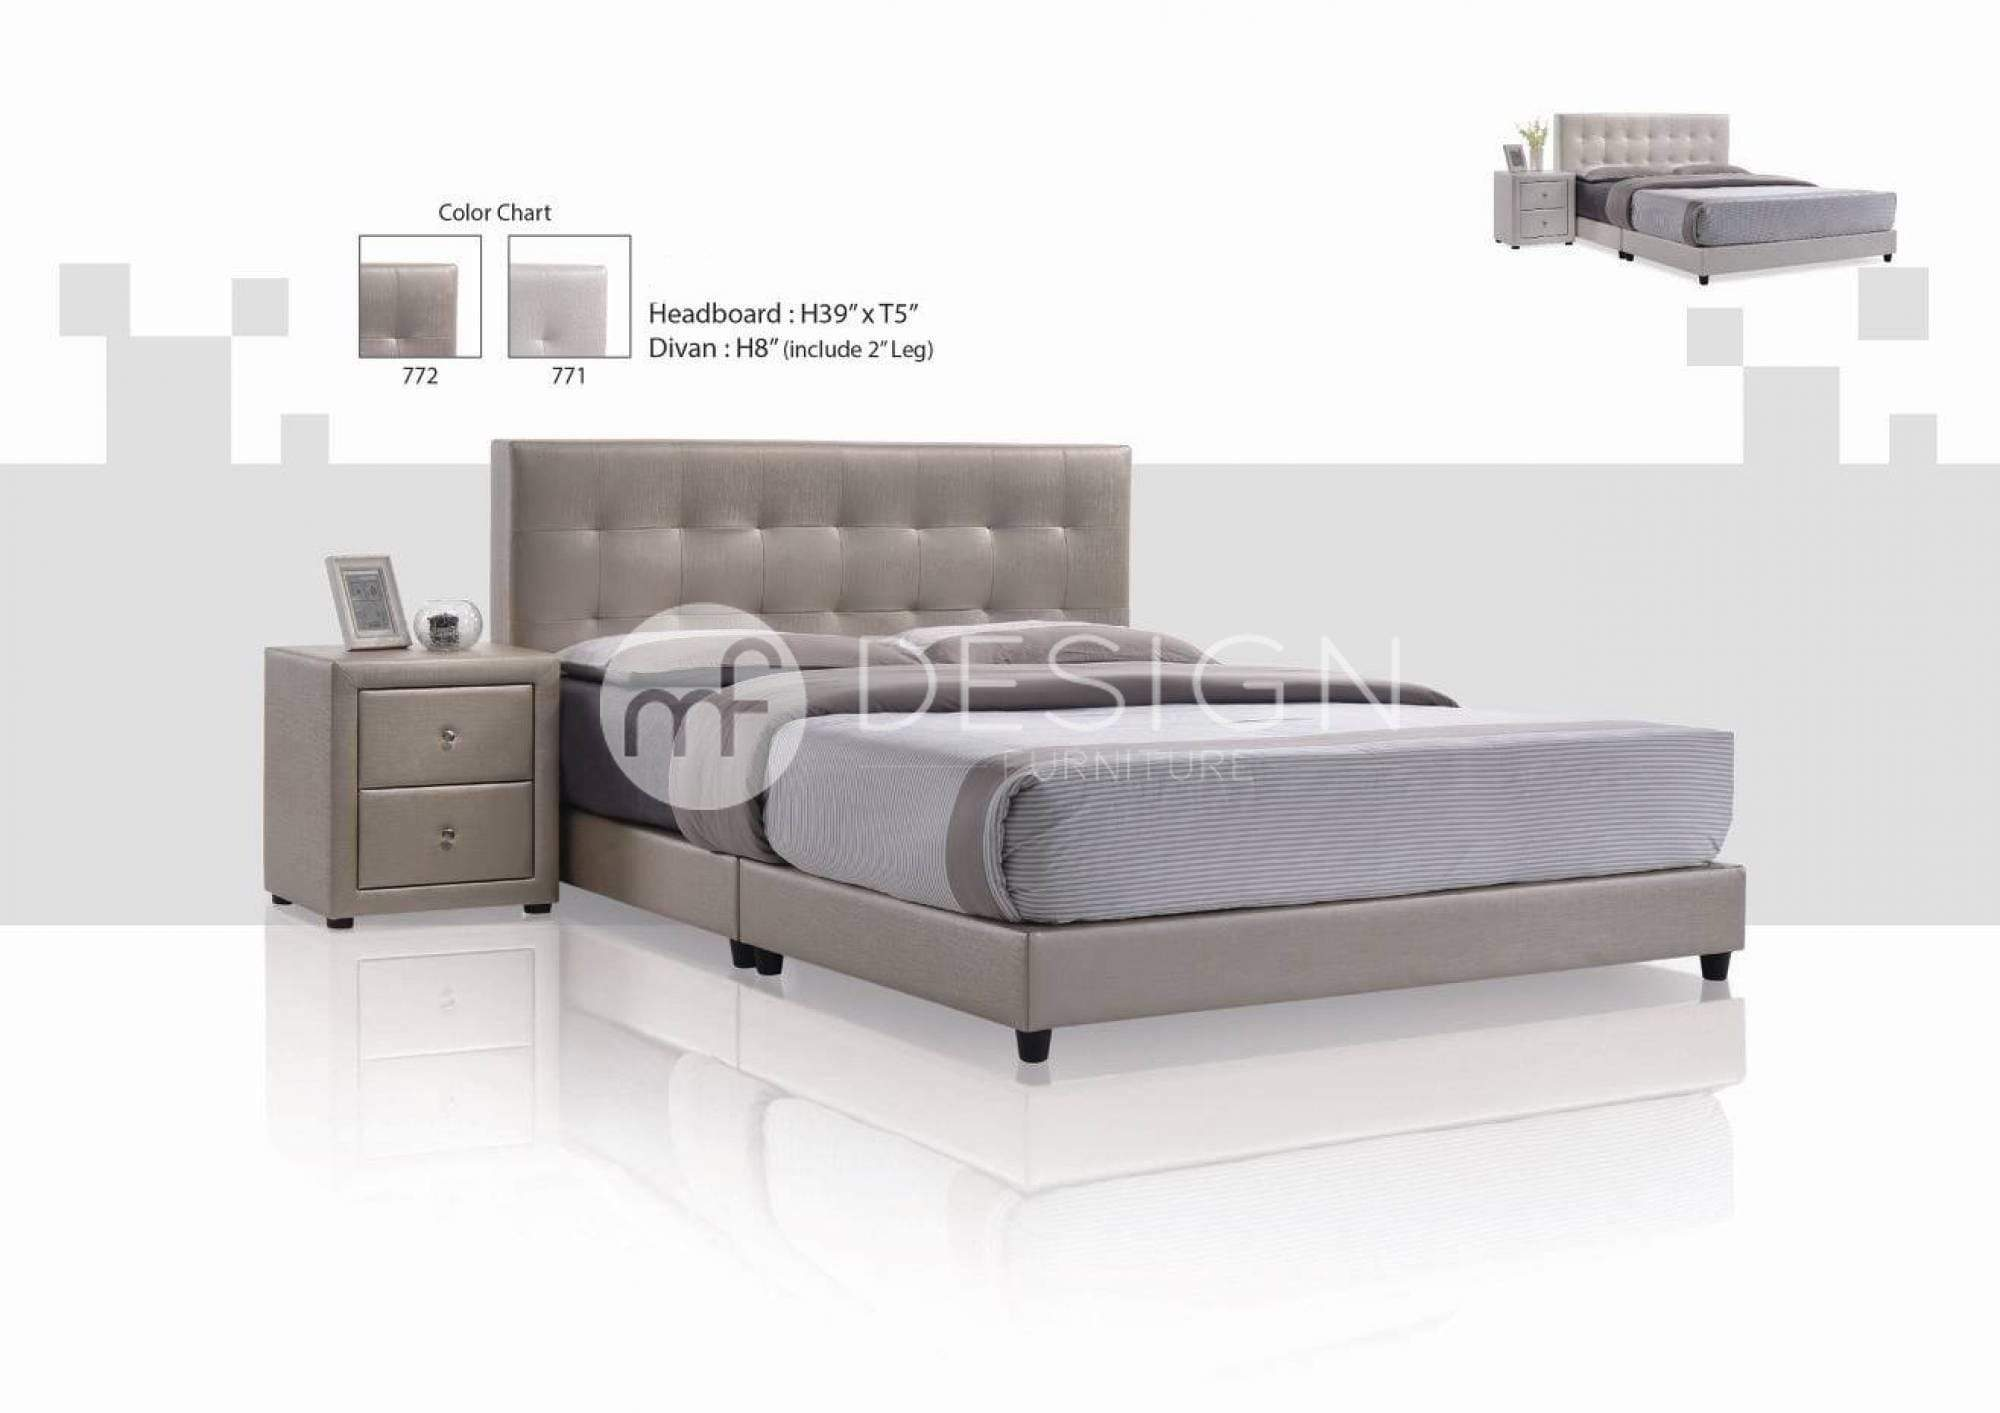 mfdesign88 HAMBURG QUEEN SIZE DIVAN BED